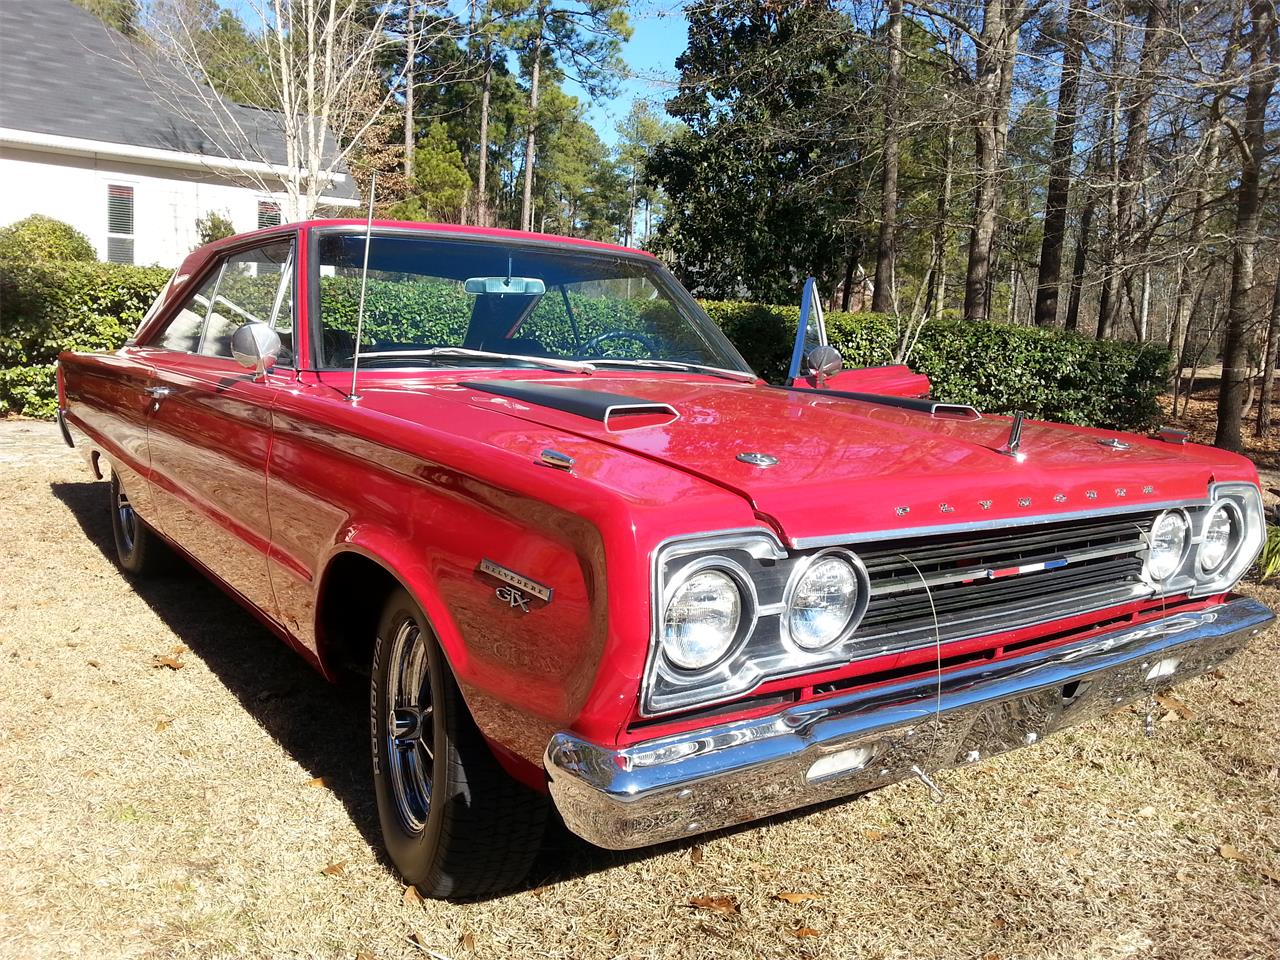 Large Picture of Classic '67 Plymouth Belvedere located in Camden South Carolina - $30,900.00 Offered by a Private Seller - DG6S